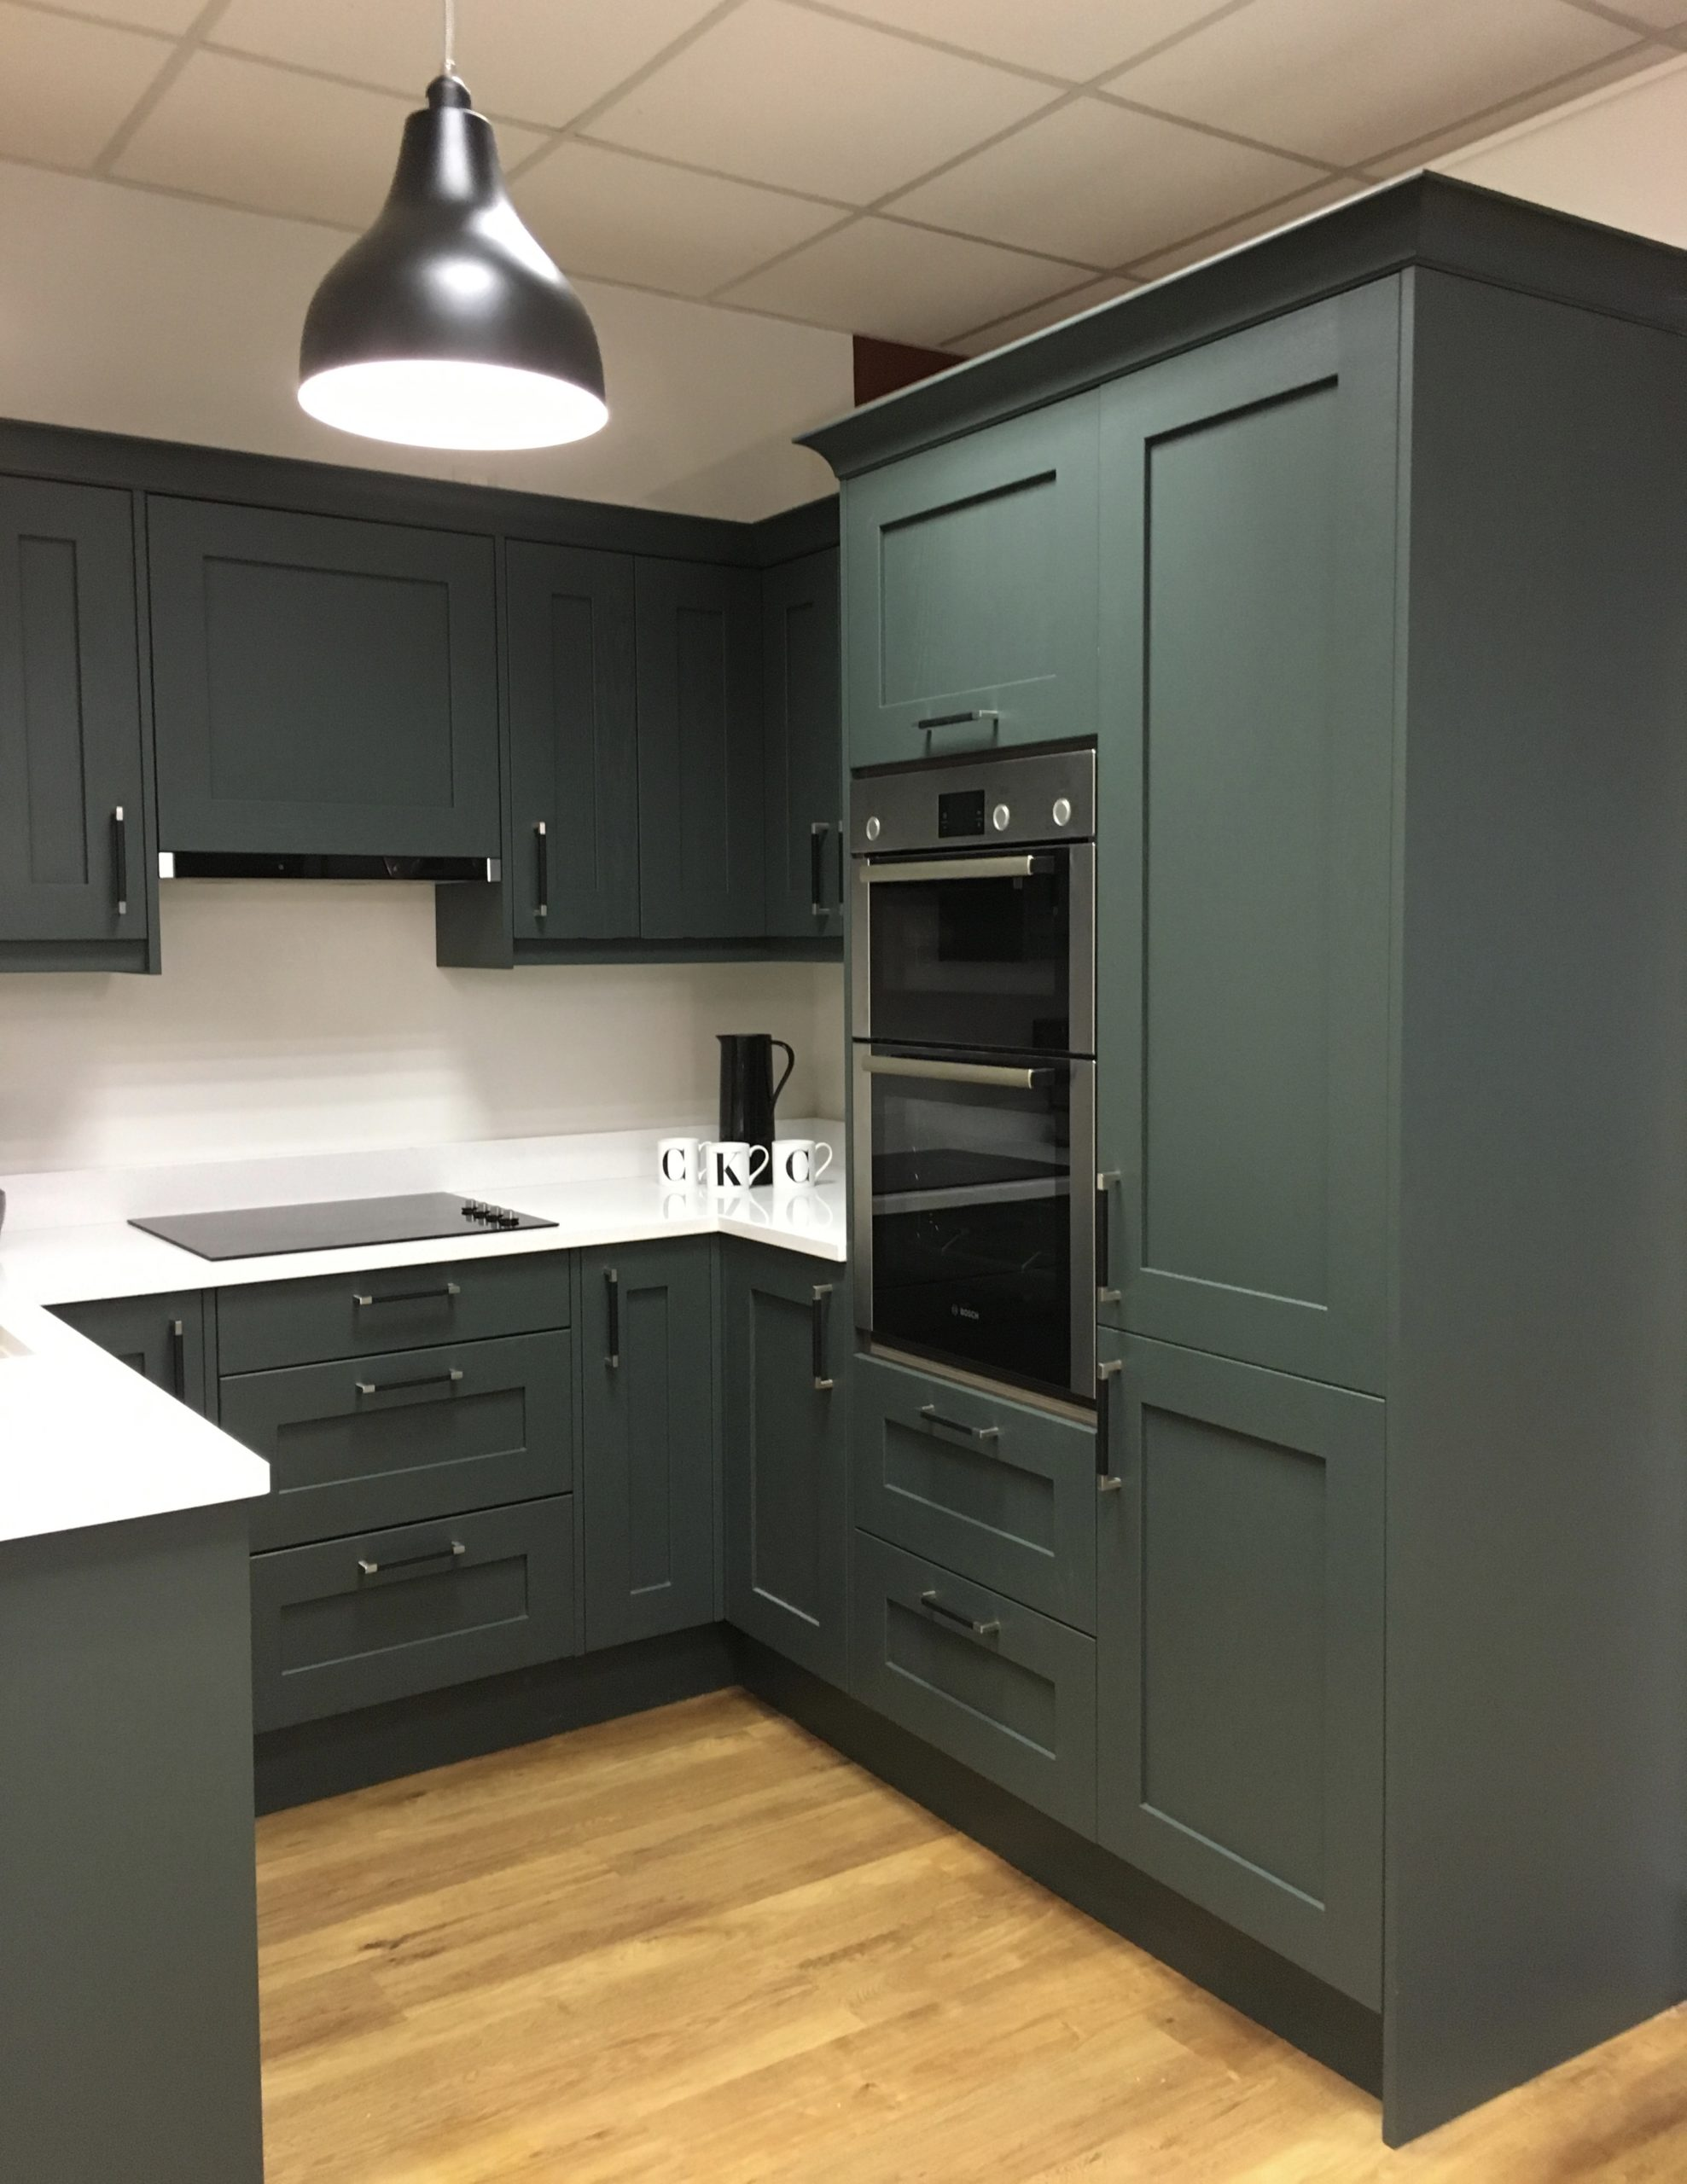 Mornington shaker style kitchen in Copse Green by PWS with white Maple Blanco silestone worktop